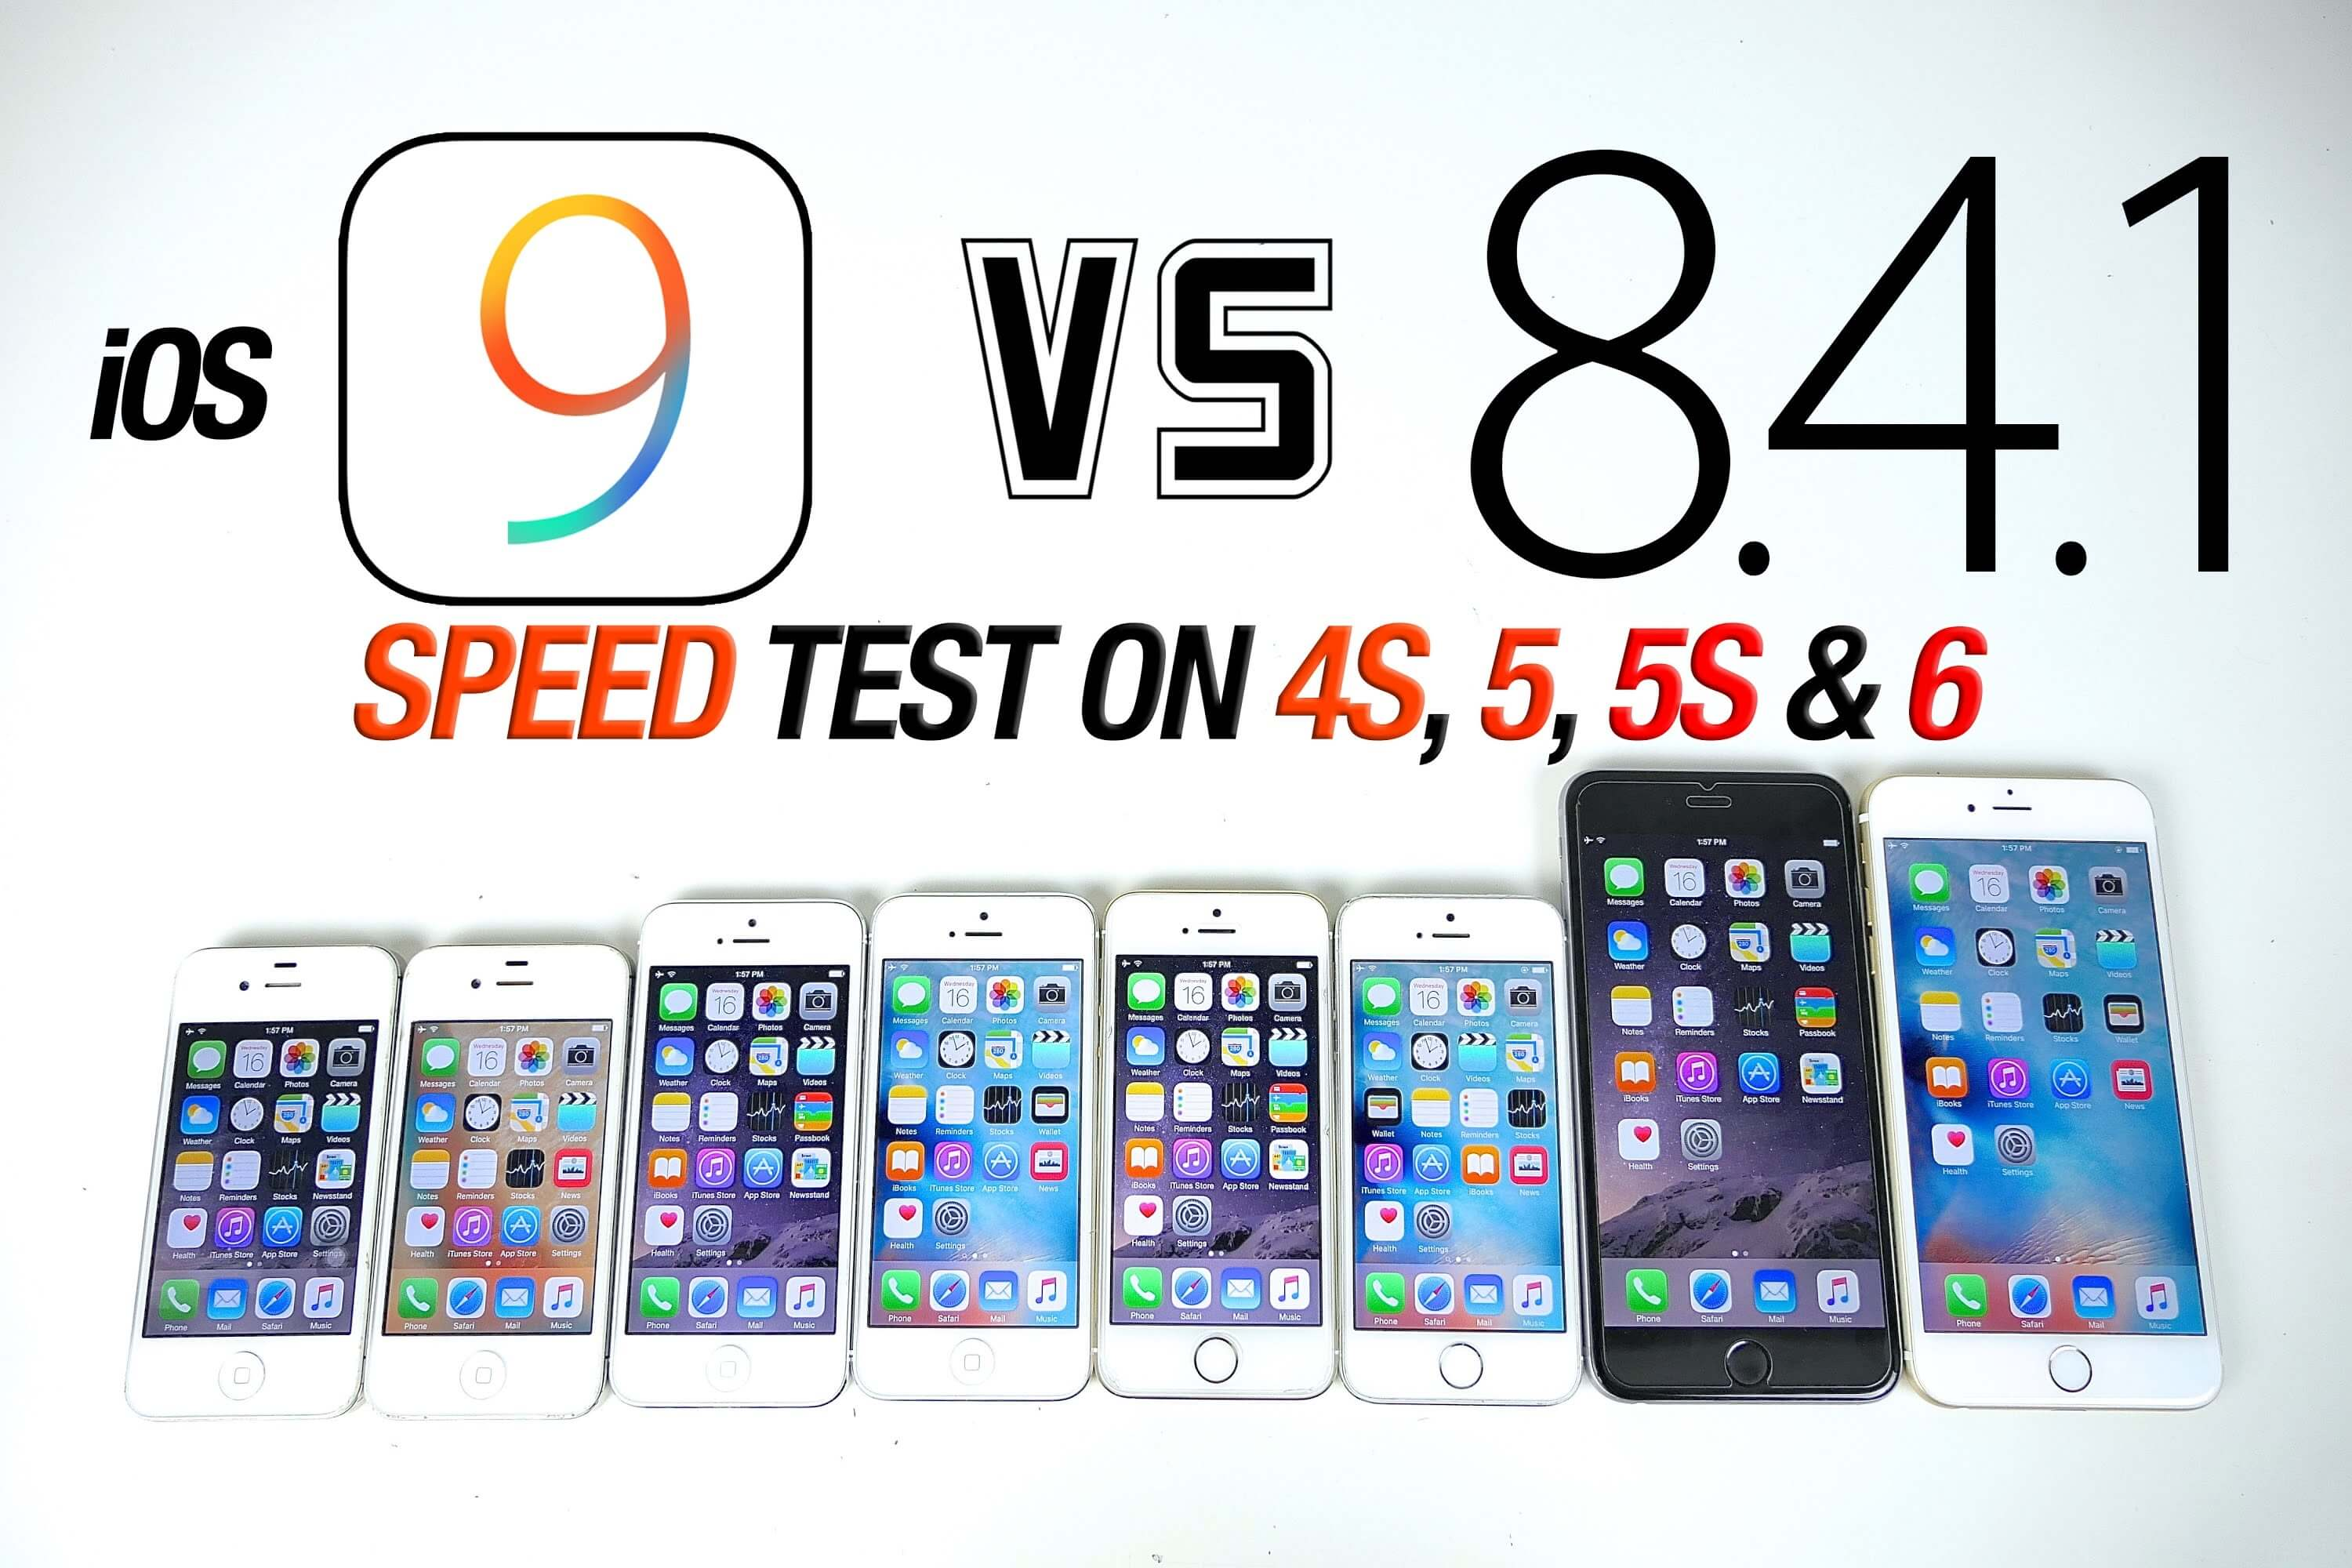 iOS 9 vs iOS 8.4.1 iPhone 4S, 5, 5S i 6 Plus.